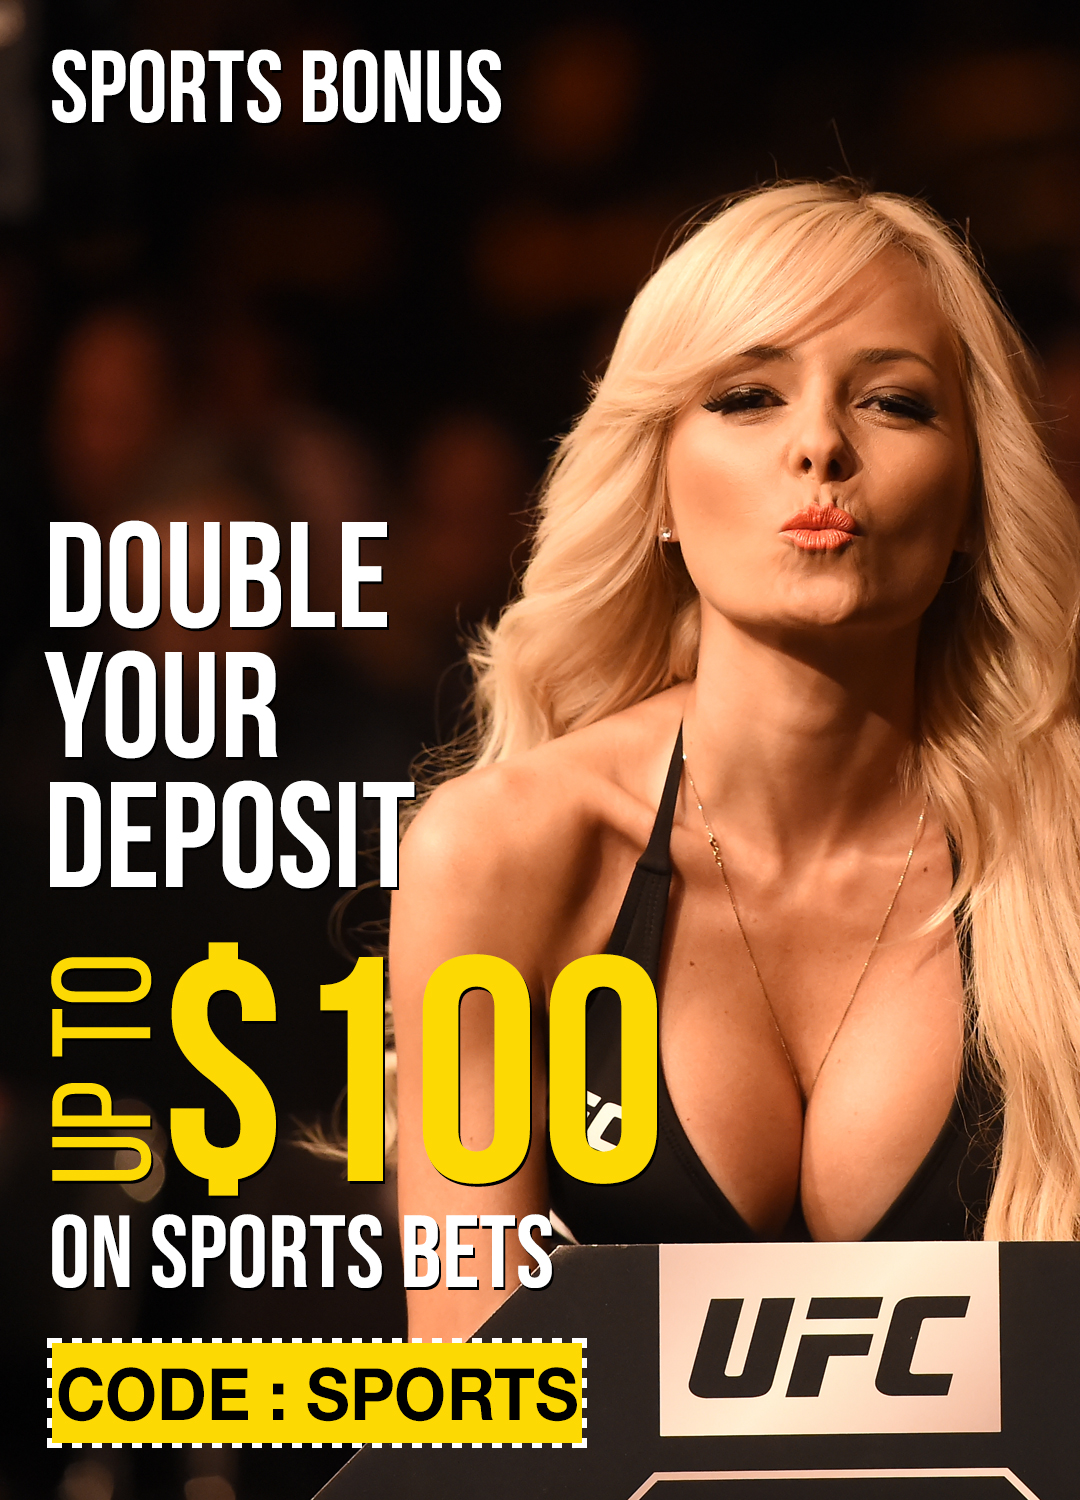 100-deposit-sports-bonus-up-to-100-bet-now